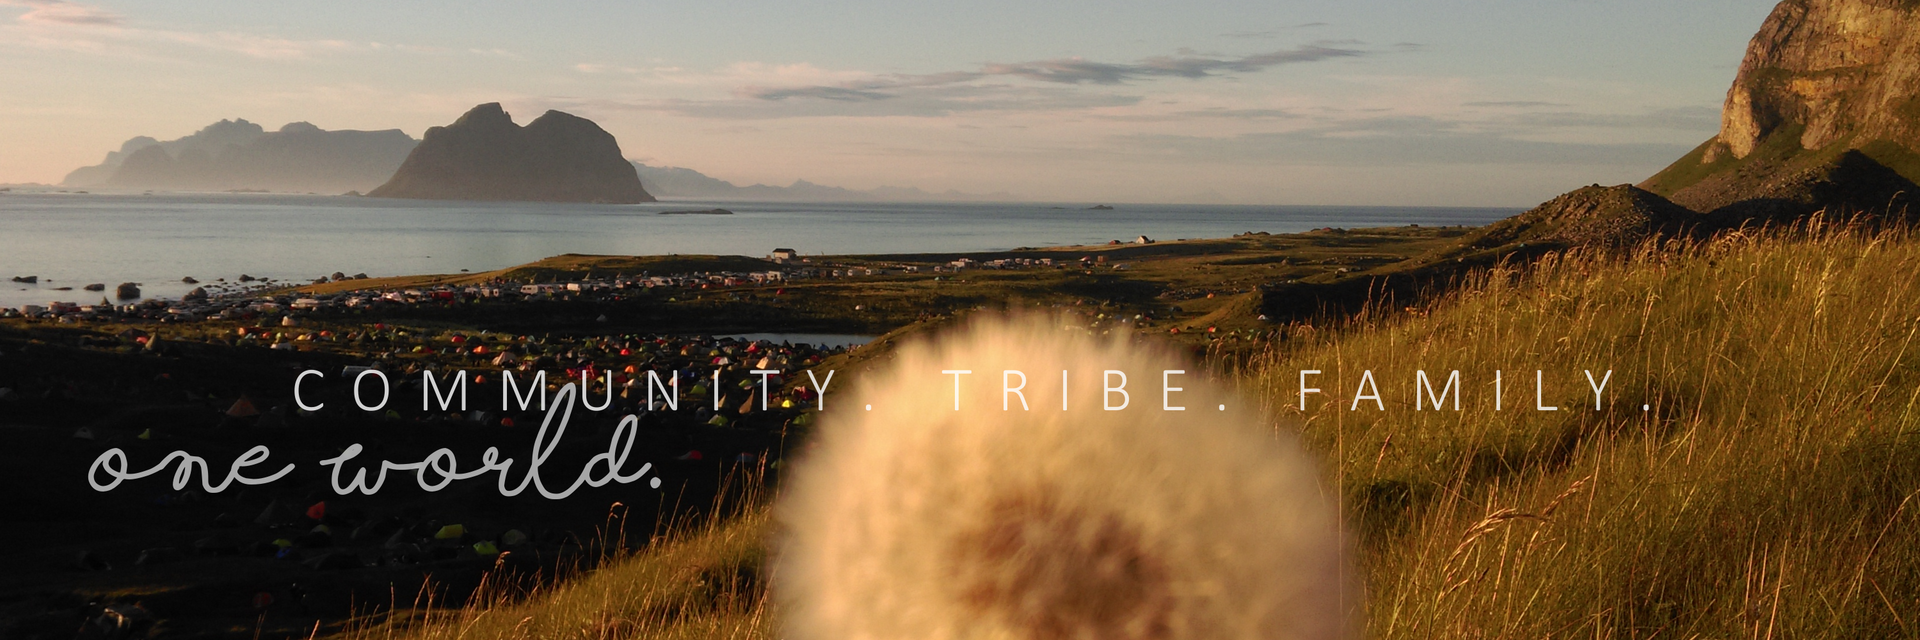 Community tribe family one world.png